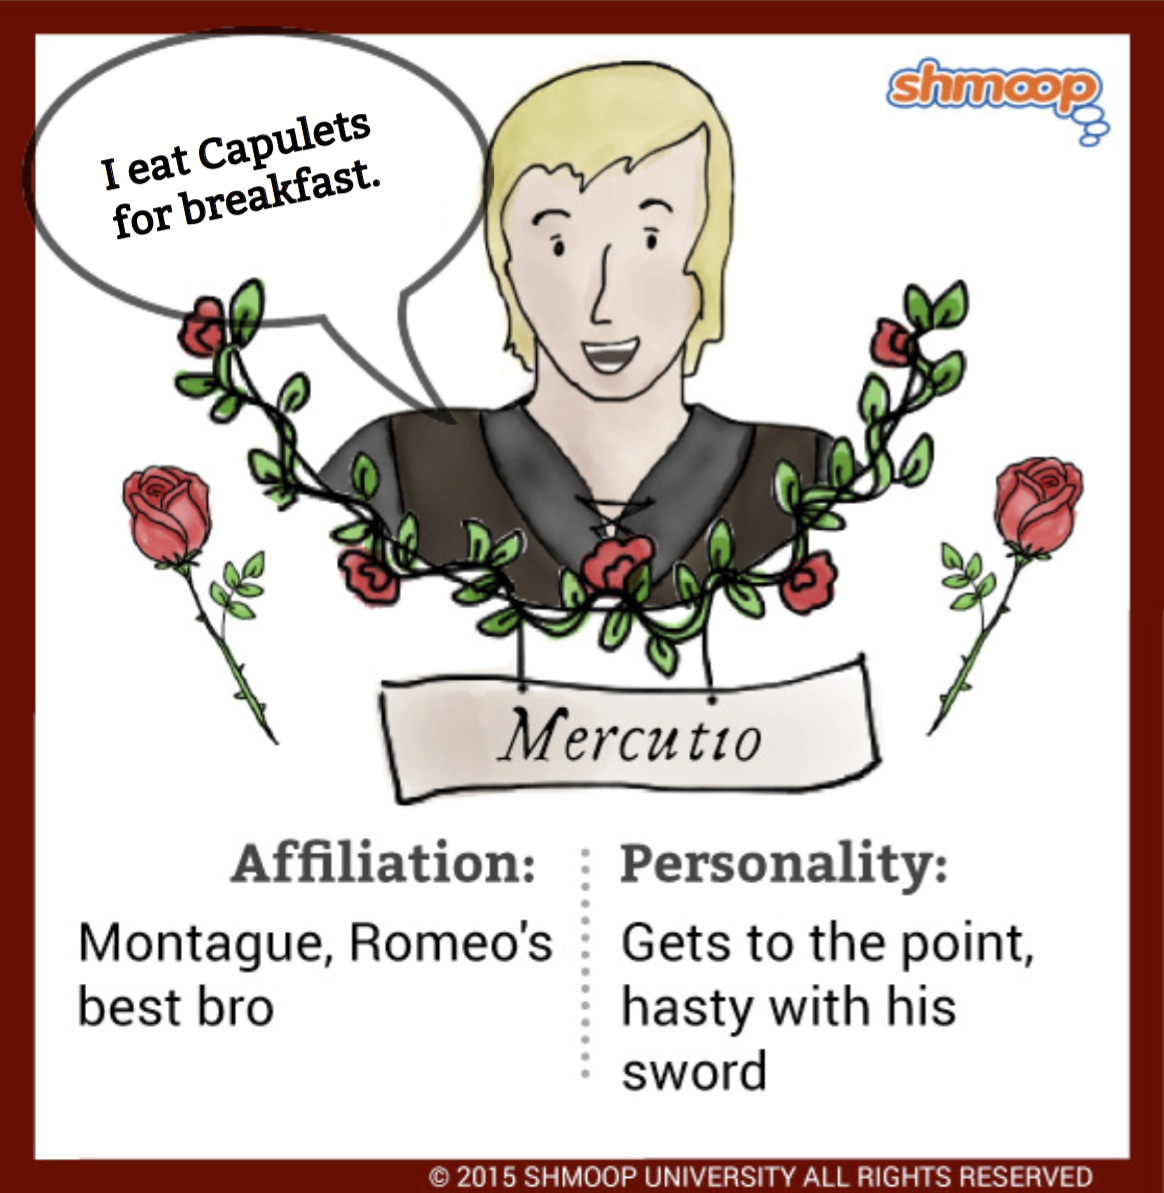 mercutio in romeo and juliet essay Character analysis of mercutio mercutio is one of the to the plot of romeo & juliet firstly, mercutio manages to get whole essay and download the.